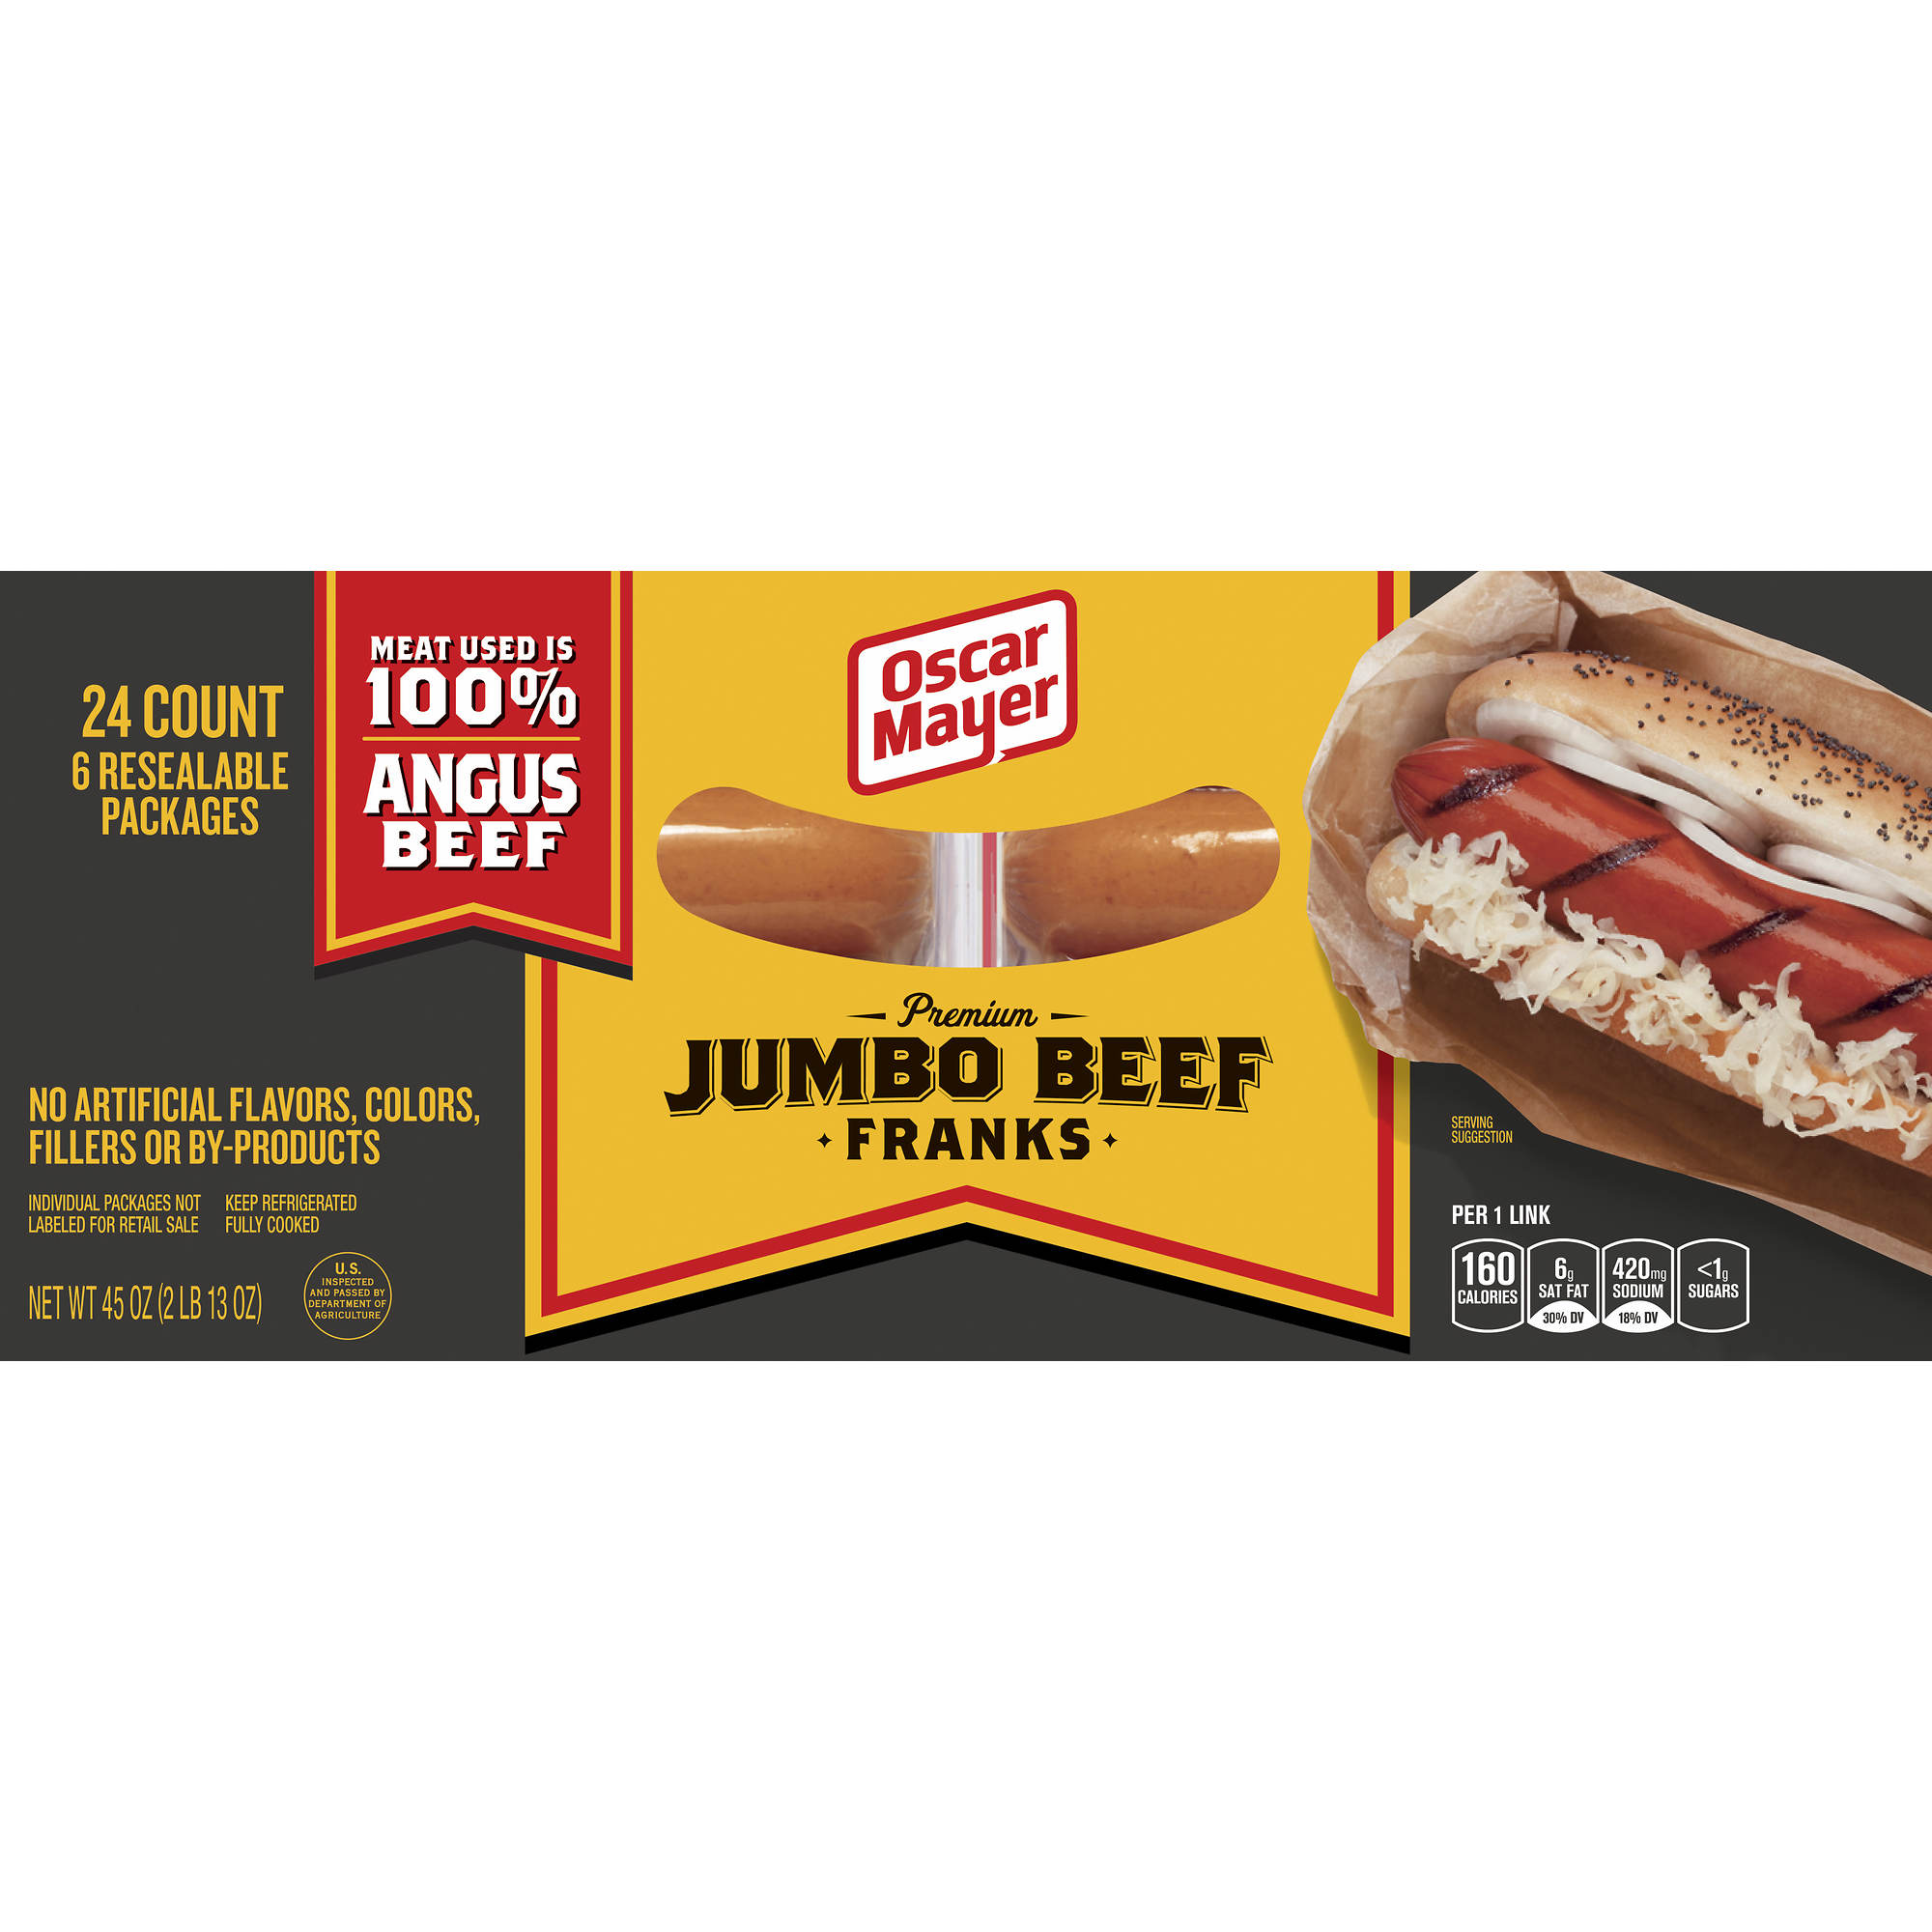 Food 20Fads in addition Hot Albertsons Oscar Mayer Hot Dog Packages Only 0 49 Each 4th Of July also Los Logos Mas Famosos Del Mundo Parte 1 together with Free 4th July Kit Digital Coupon Kroger Clicklist further Get The Kids Off The Couch And Neverbeboredagain With Lunchables Lunch Creations Giveaway. on oscar mayer dog coupons